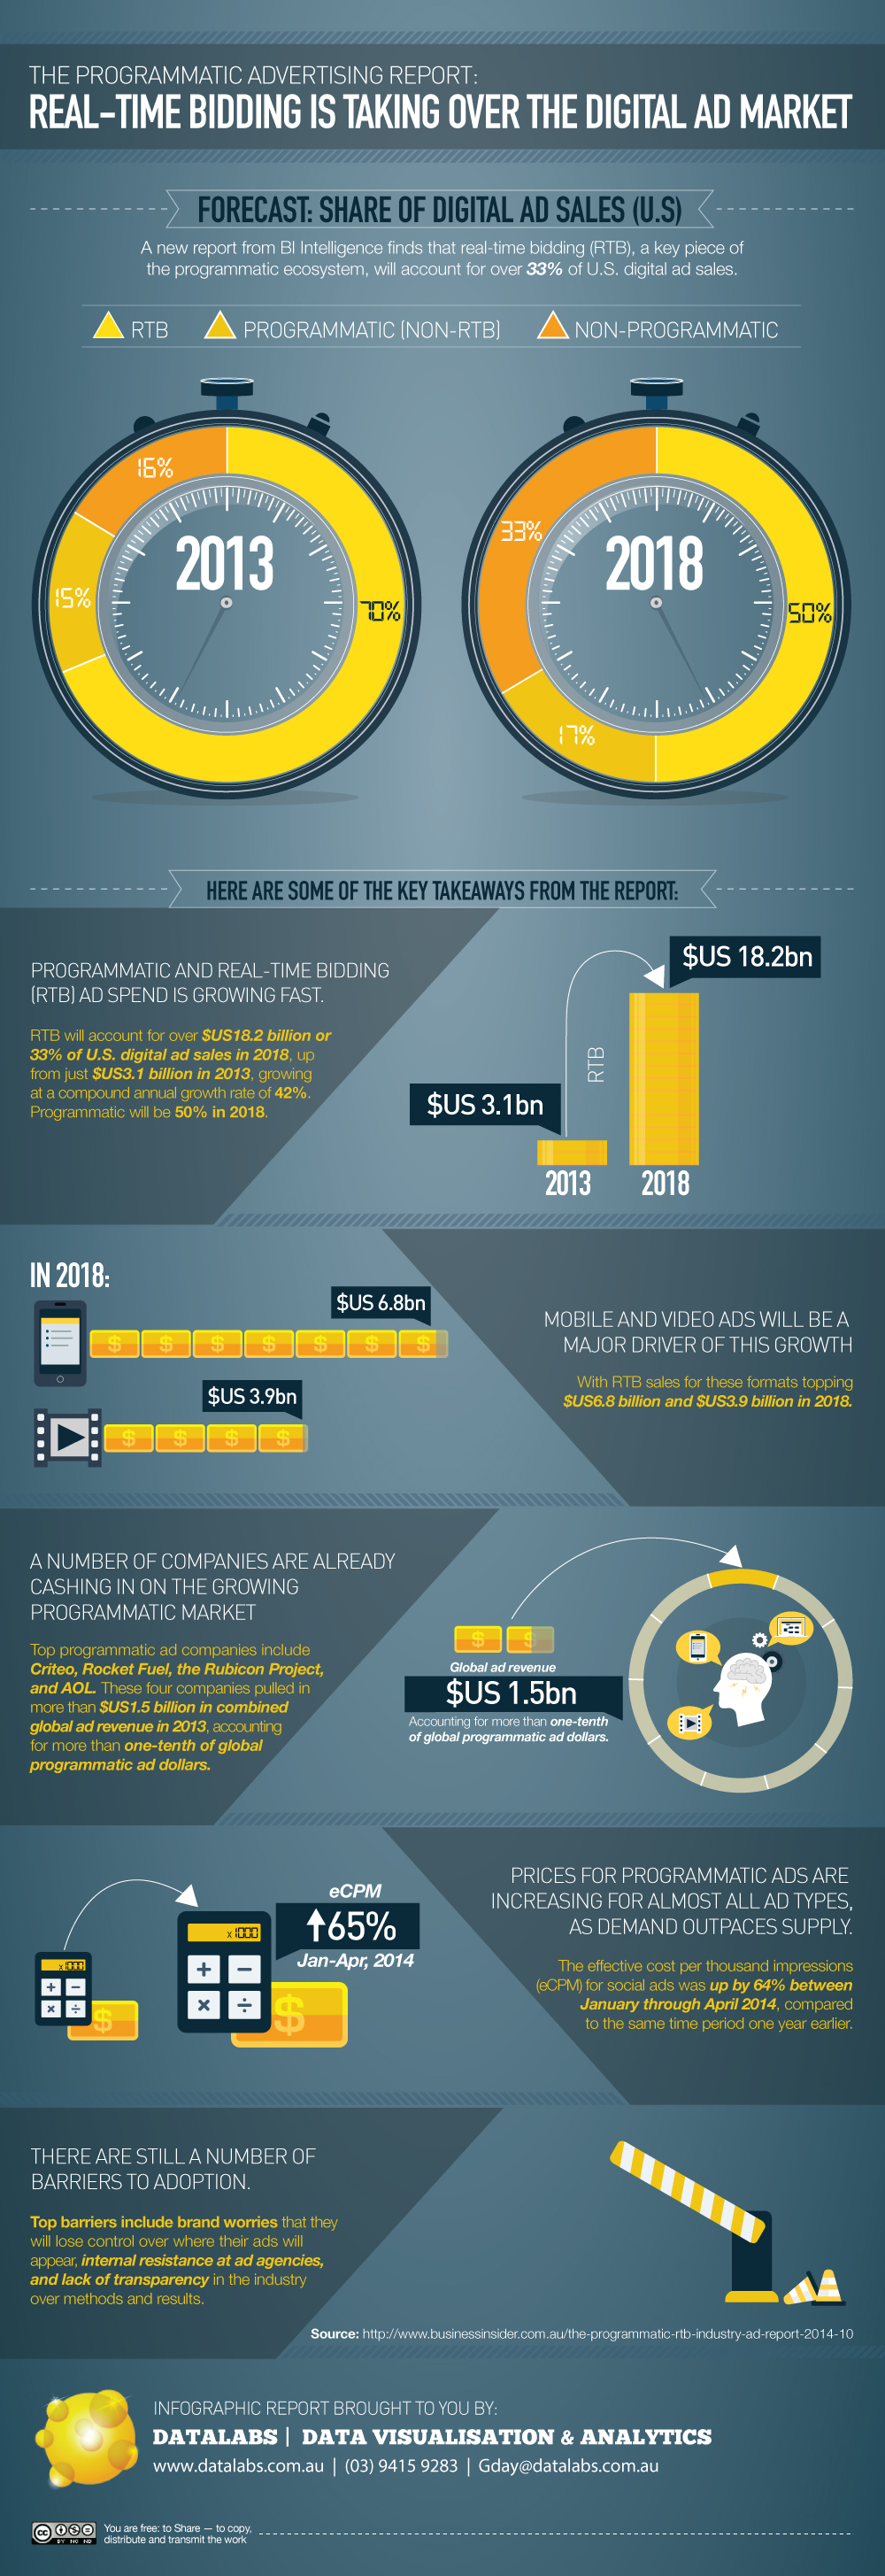 Datalabs-Programmatic-RTB-Infographic-Report